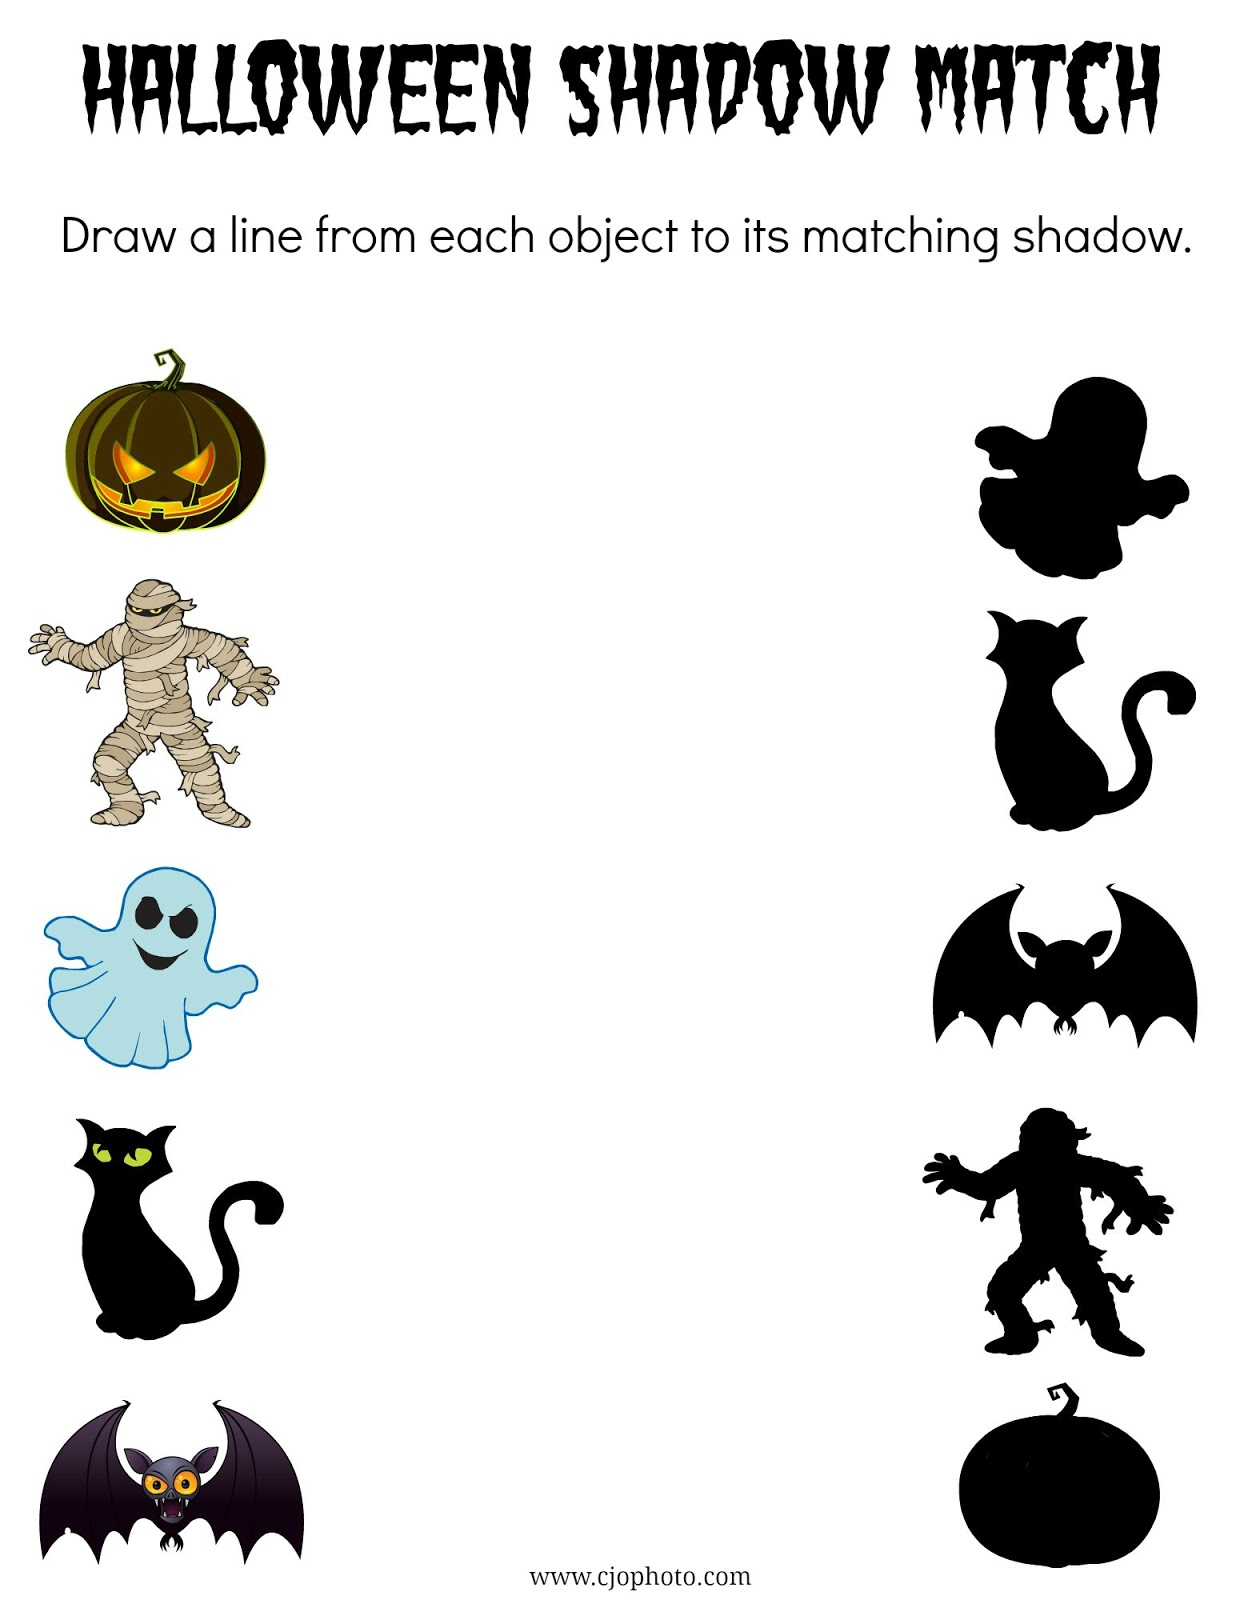 Cjo Photo Printable Halloween Shadow Match Game